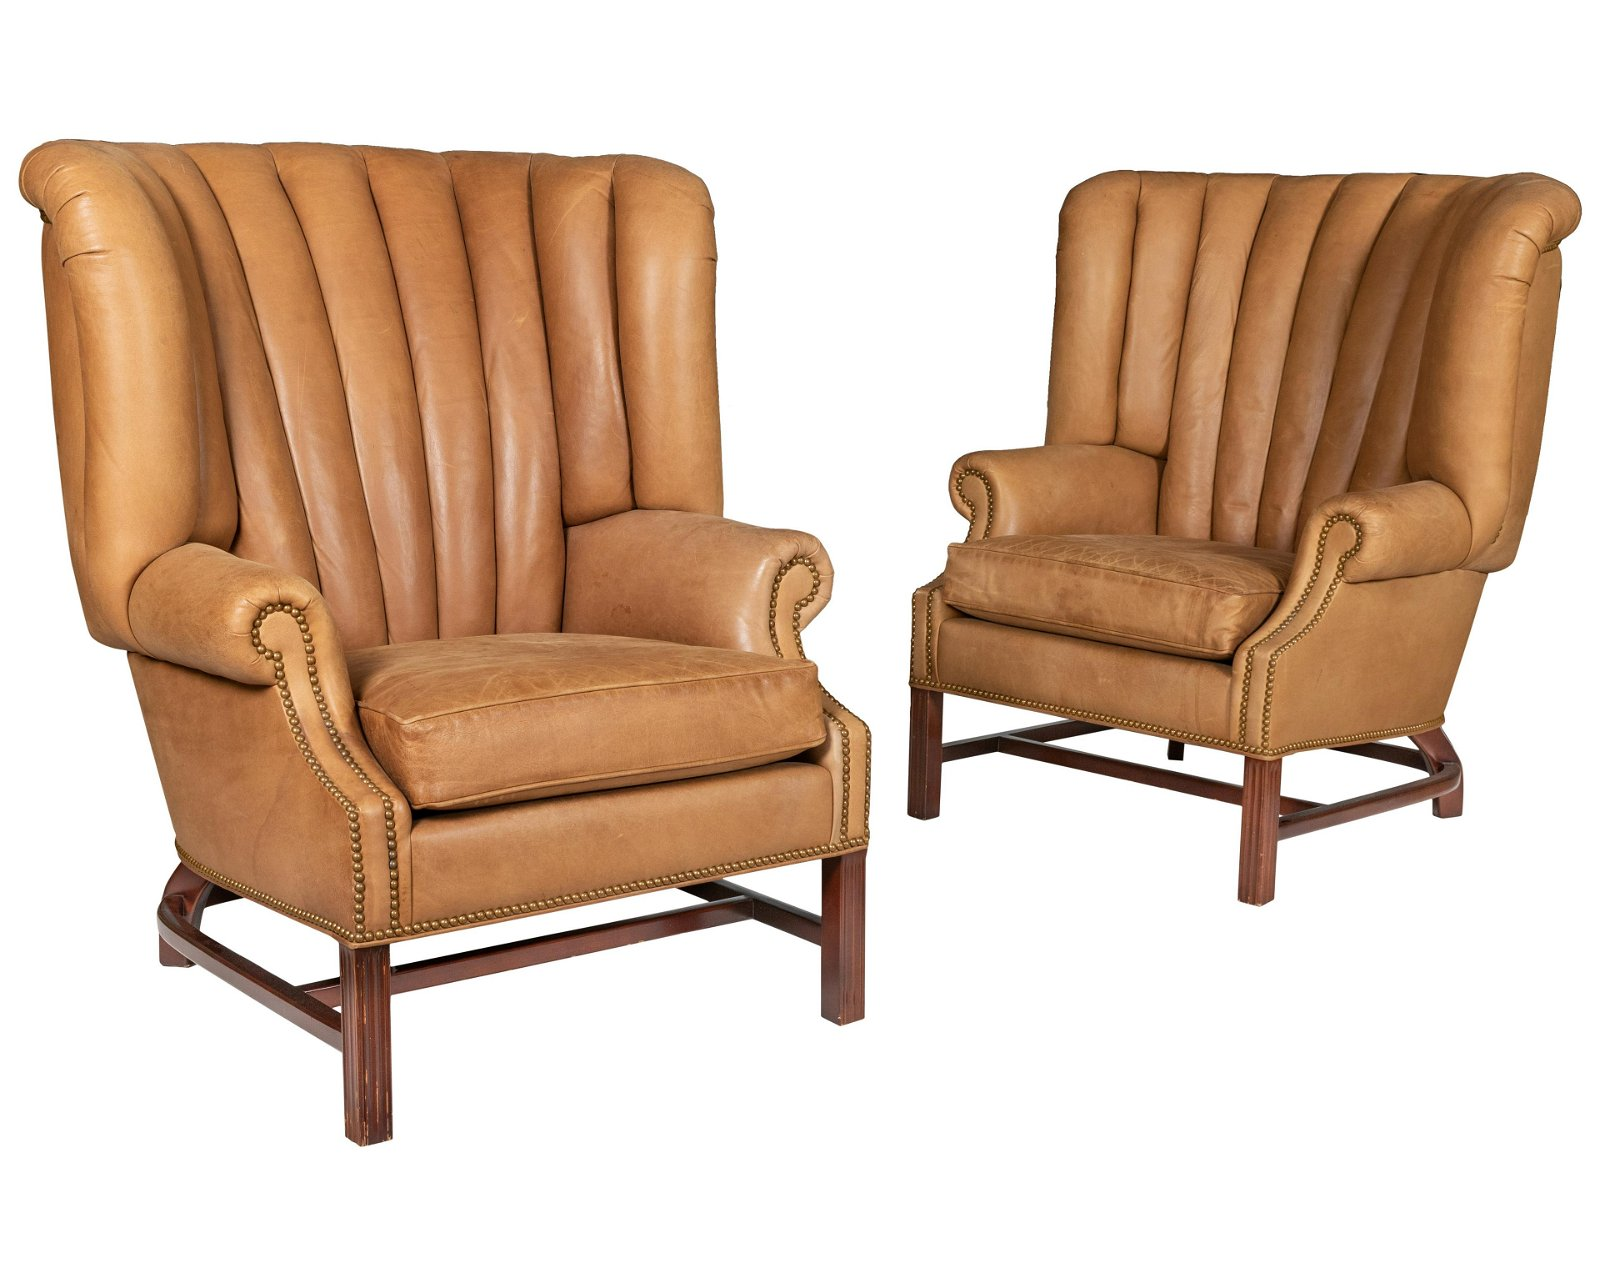 Hancock & Moore - Leather Library Chairs